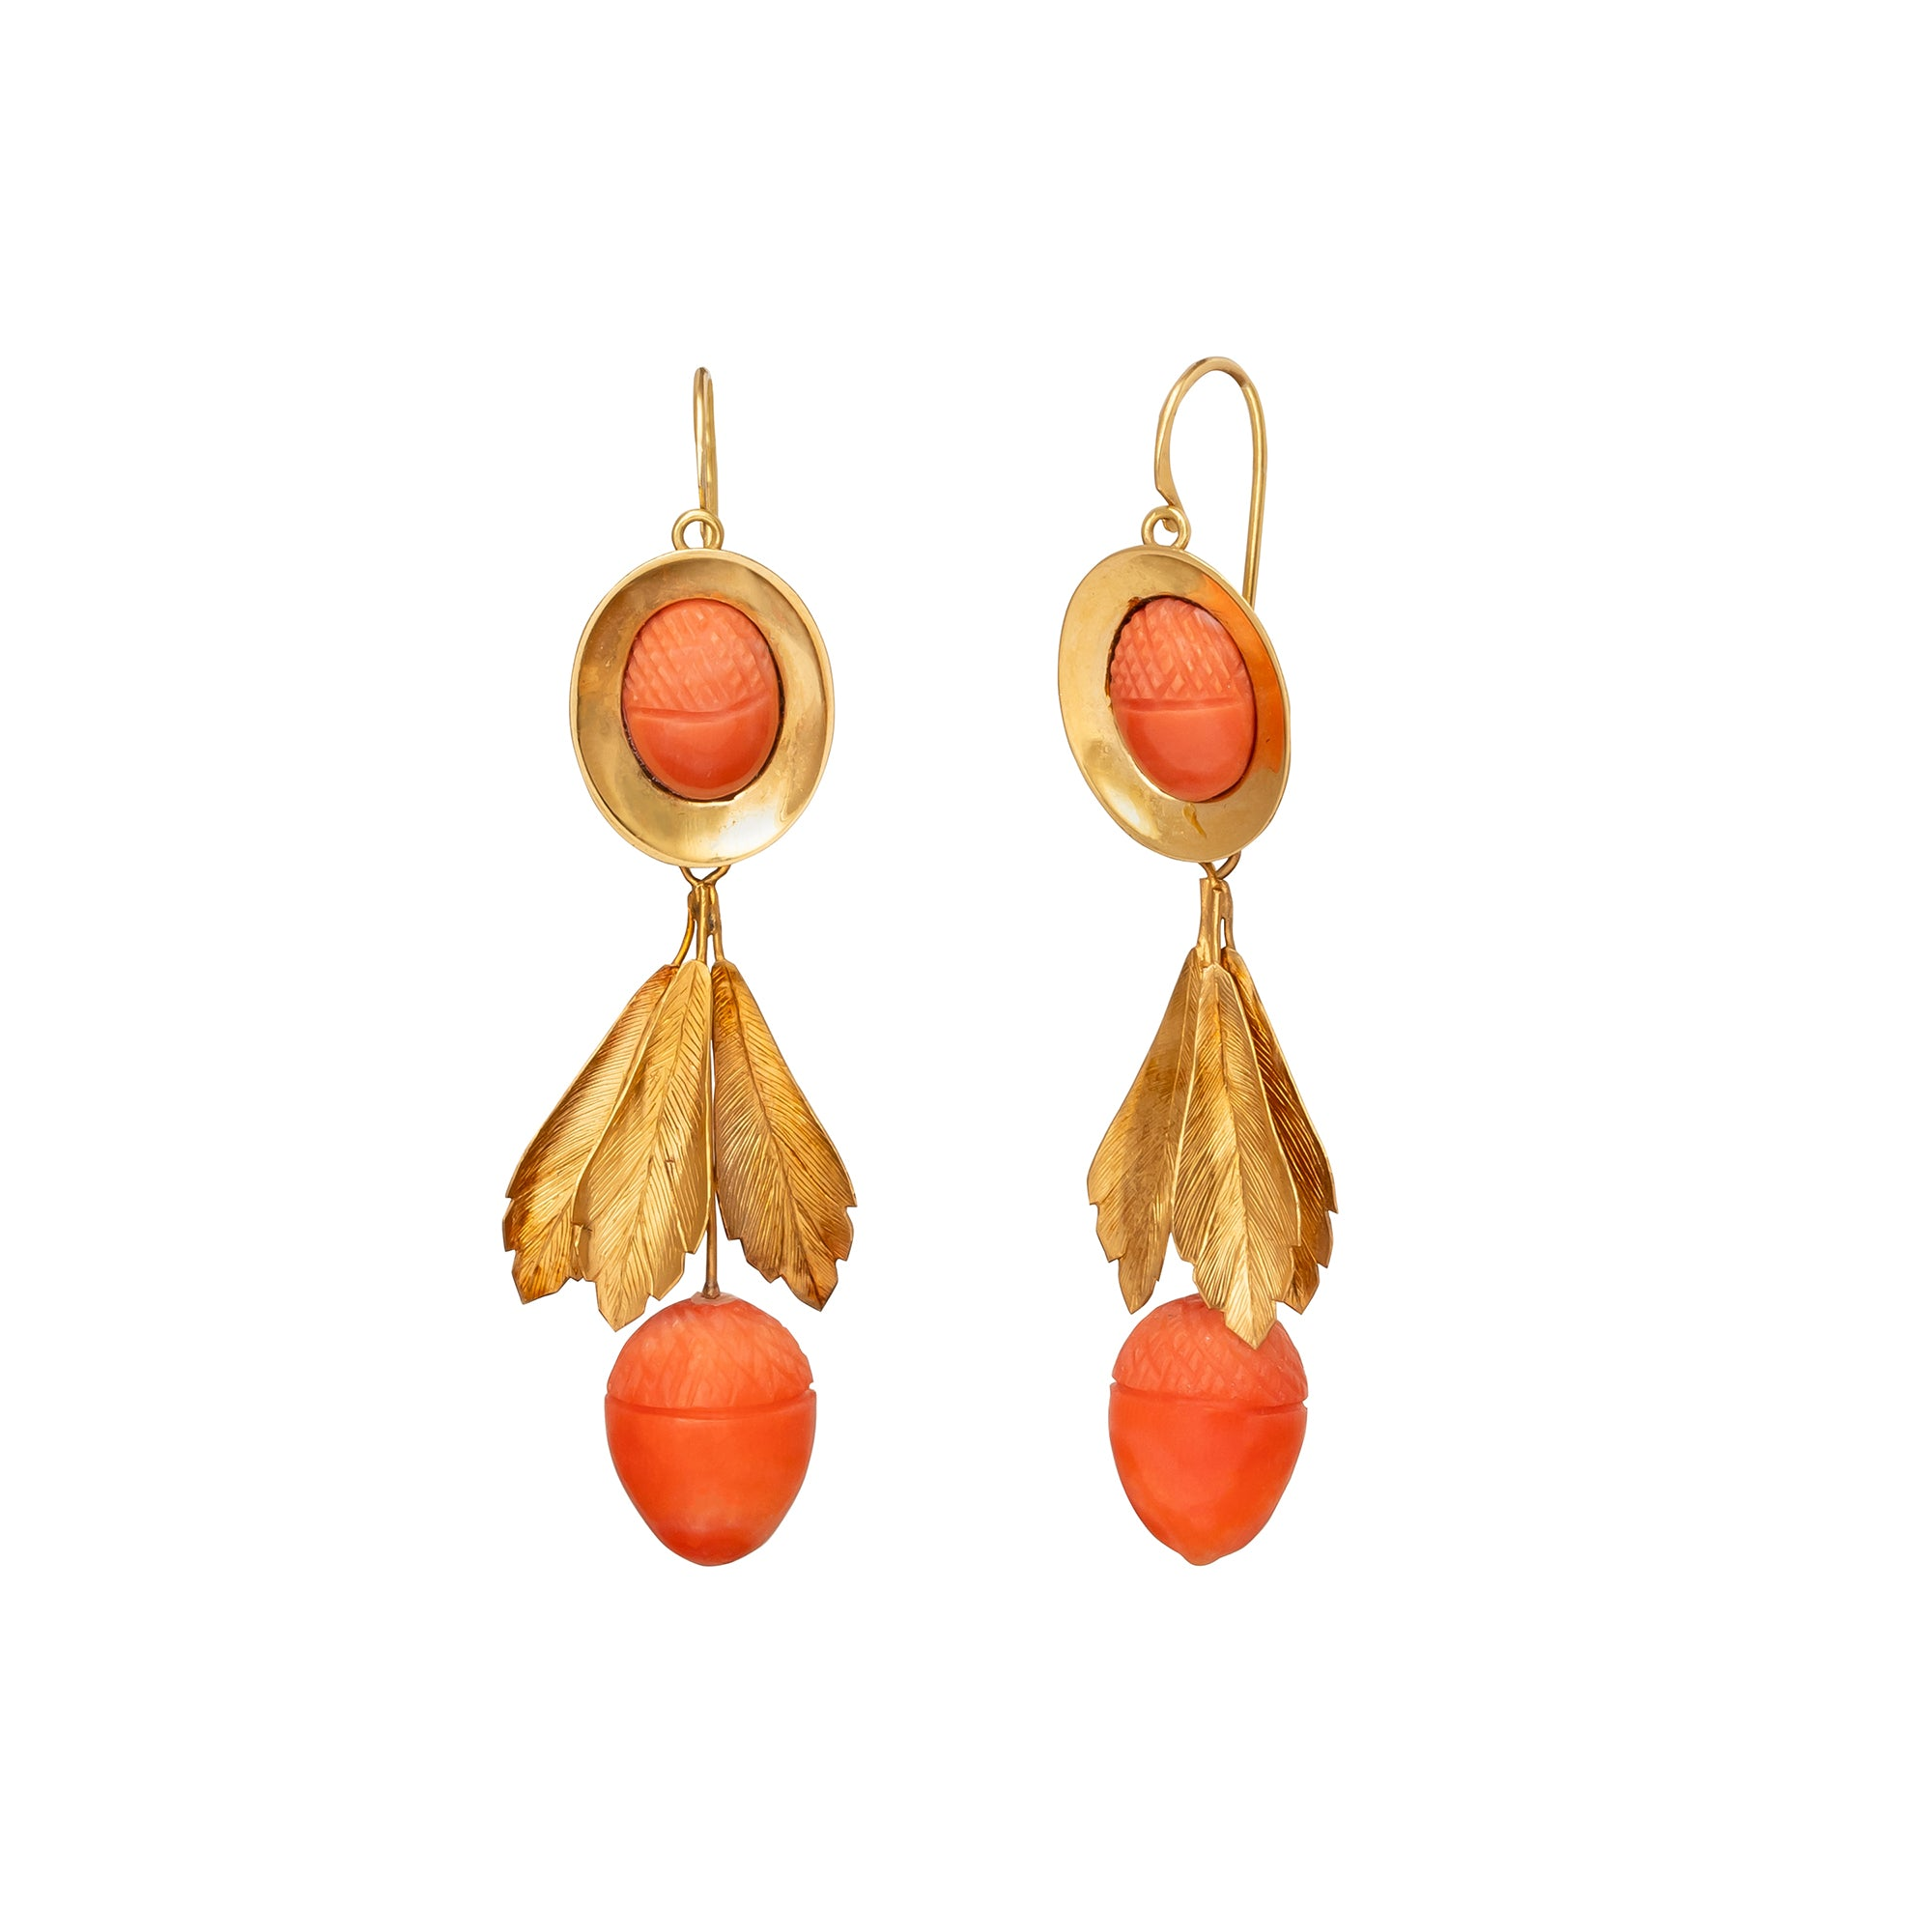 Coral Acorn Earrings - Antique & Vintage Jewelry - Earrings | Broken English Jewelry